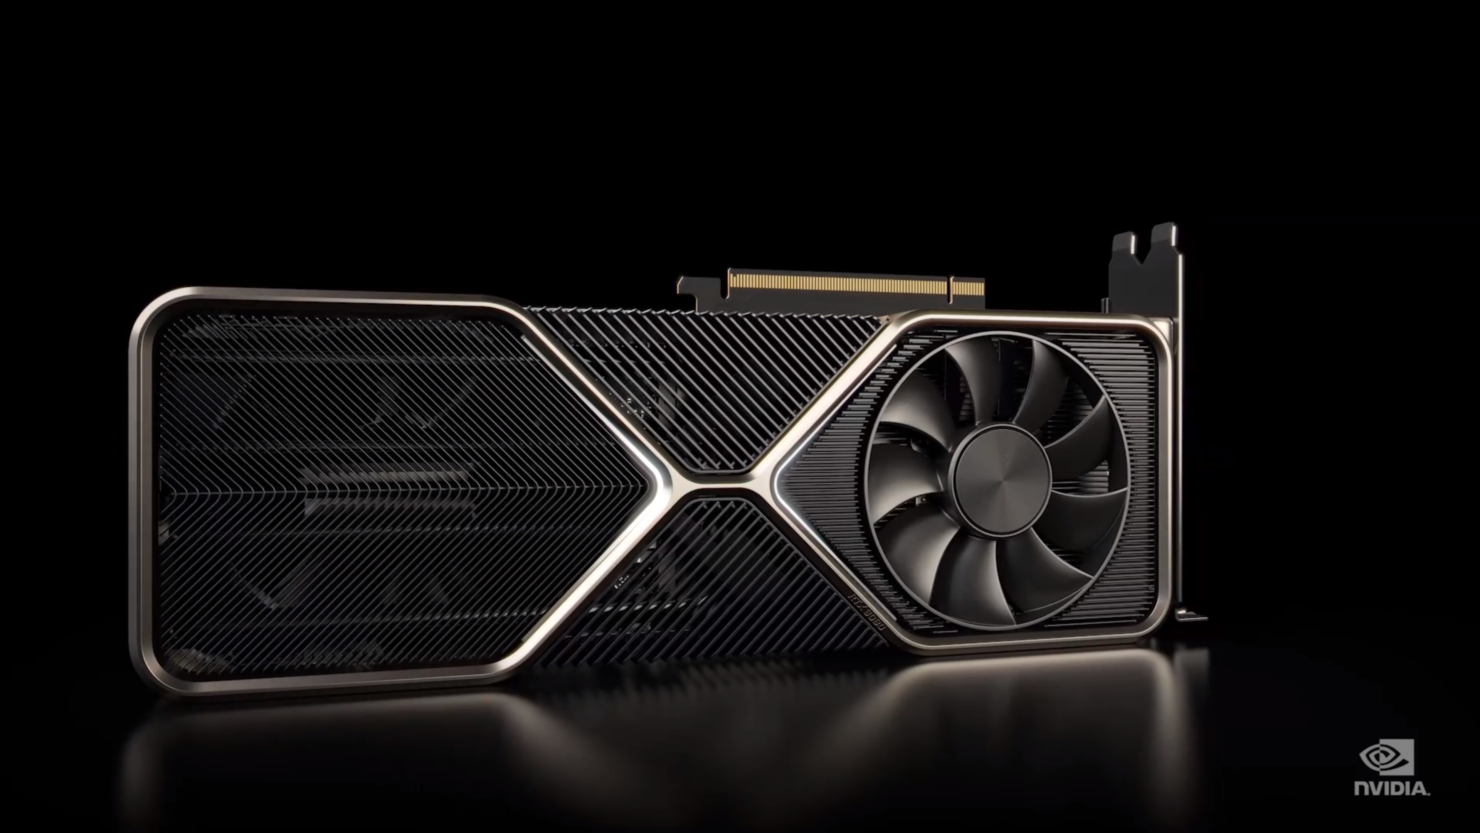 nvidia-geforce-rtx-3080-super-graphics-card-listed-by-hphellip